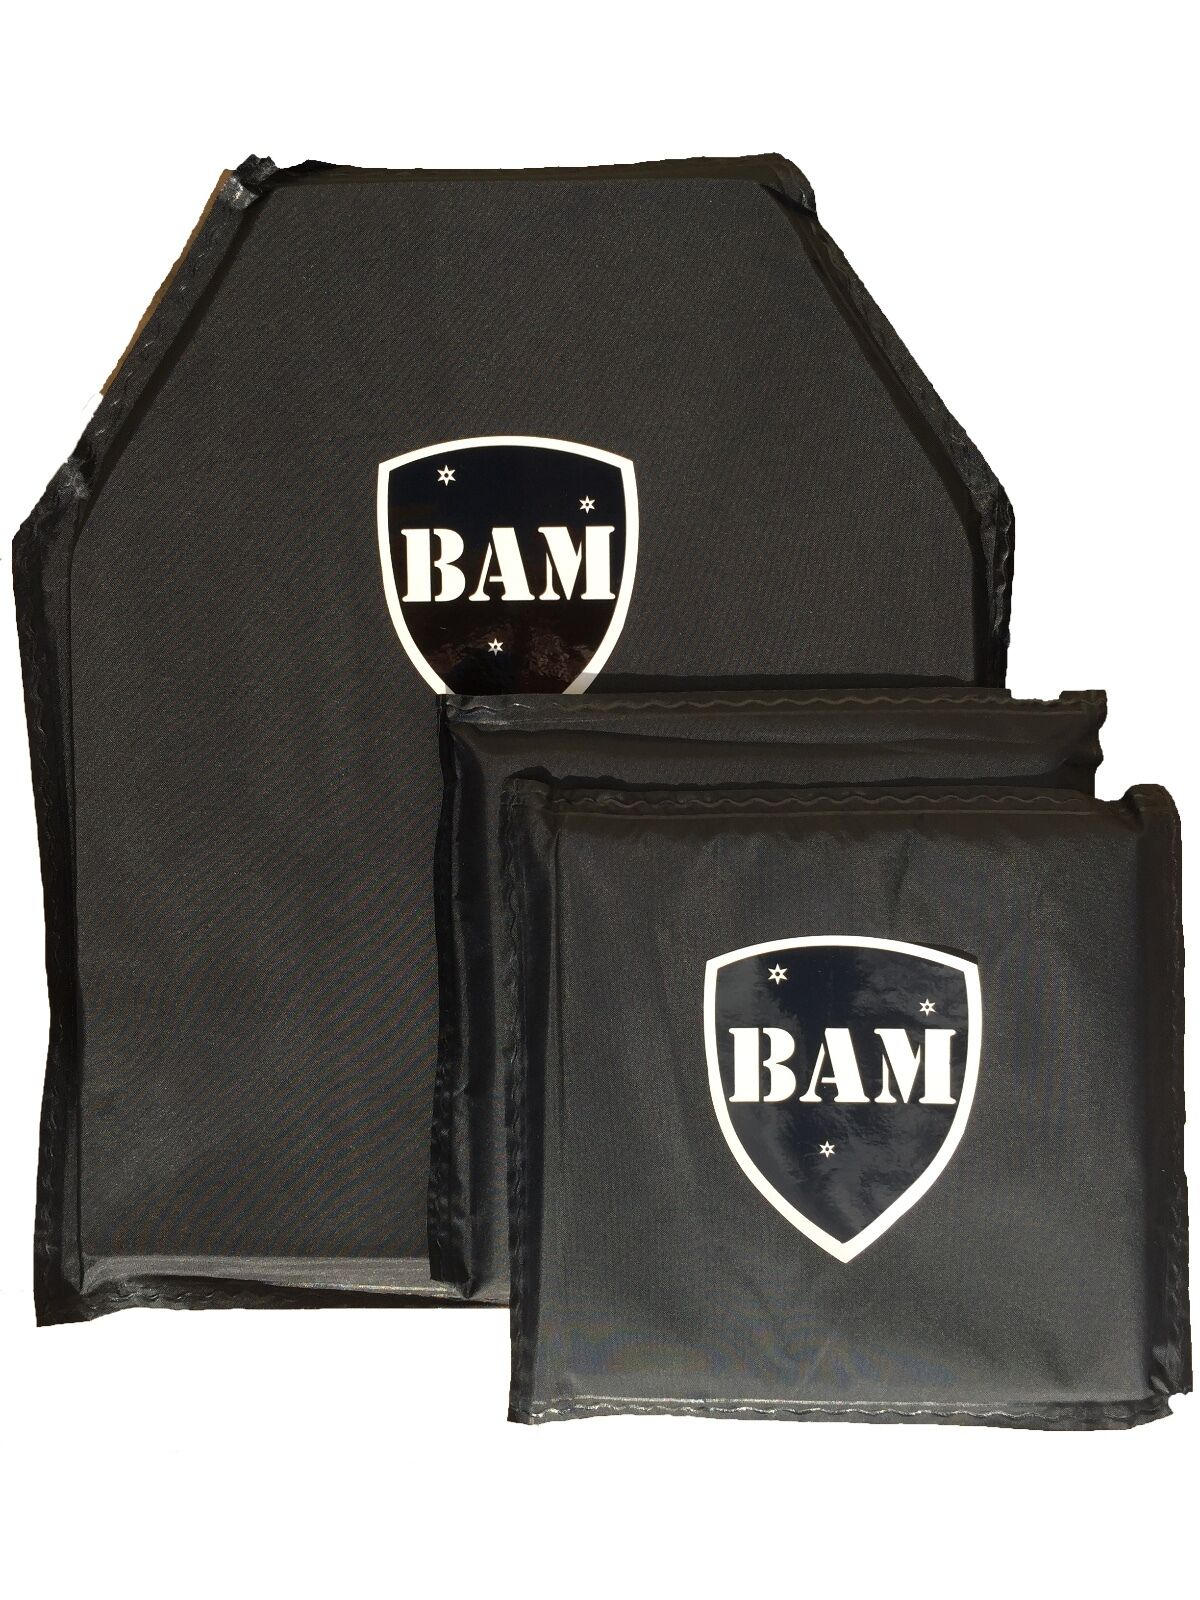 Body Armor   Bullet Proof Insert   Level IIIA - 3A   10x12-6x6   Mfg NOV 2018